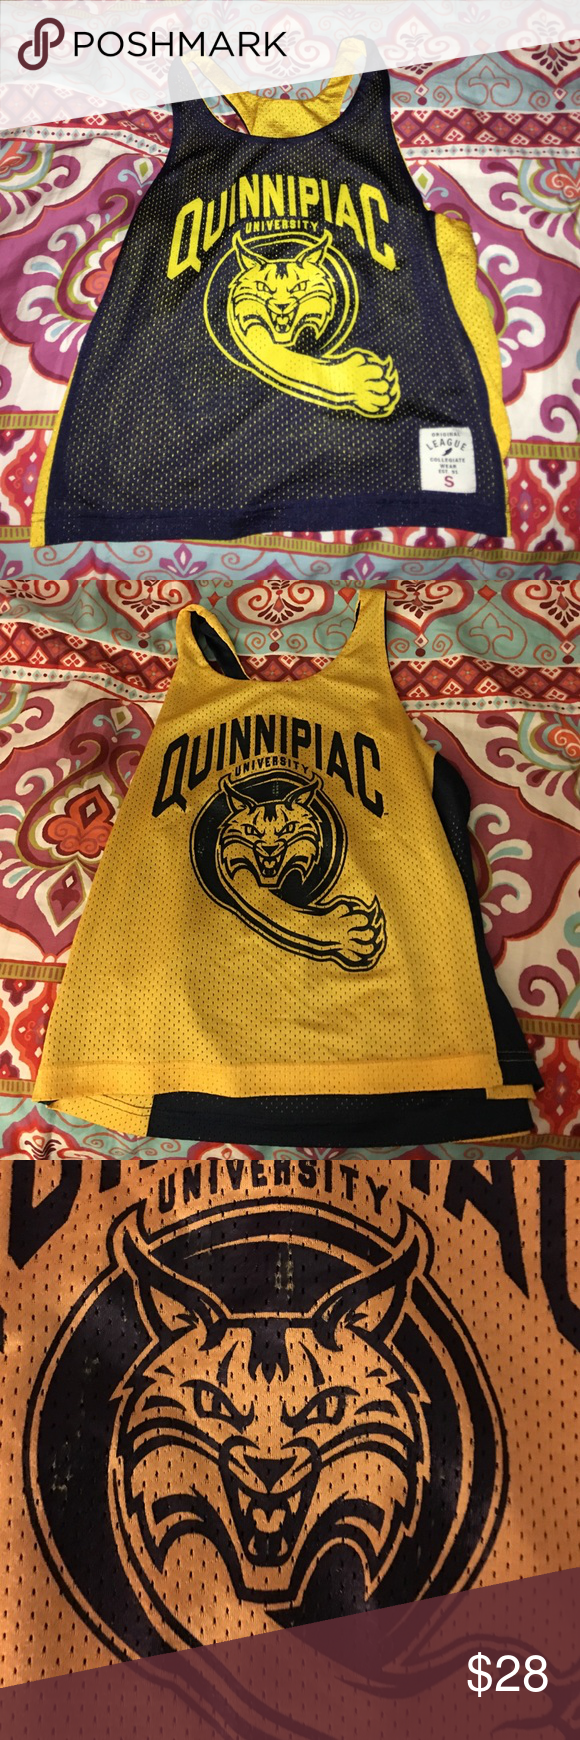 Quinnipiac University Reversible Penny Tank This penny is the perfect way to show off school spirit! Good condition, minor wear on yellow side near bobcat! Racer back tank. Women's cut. Nike is only listed for exposure. Nike Tops Muscle Tees